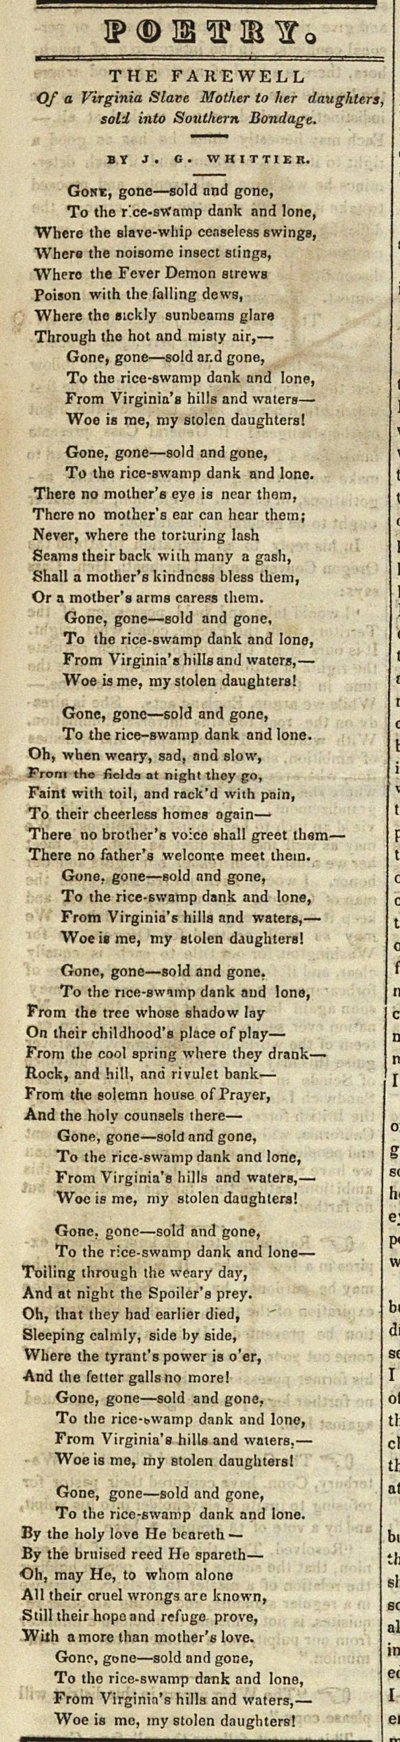 Poetry: The Farewell Of A Virginia Slave Mother To Her Daug... image